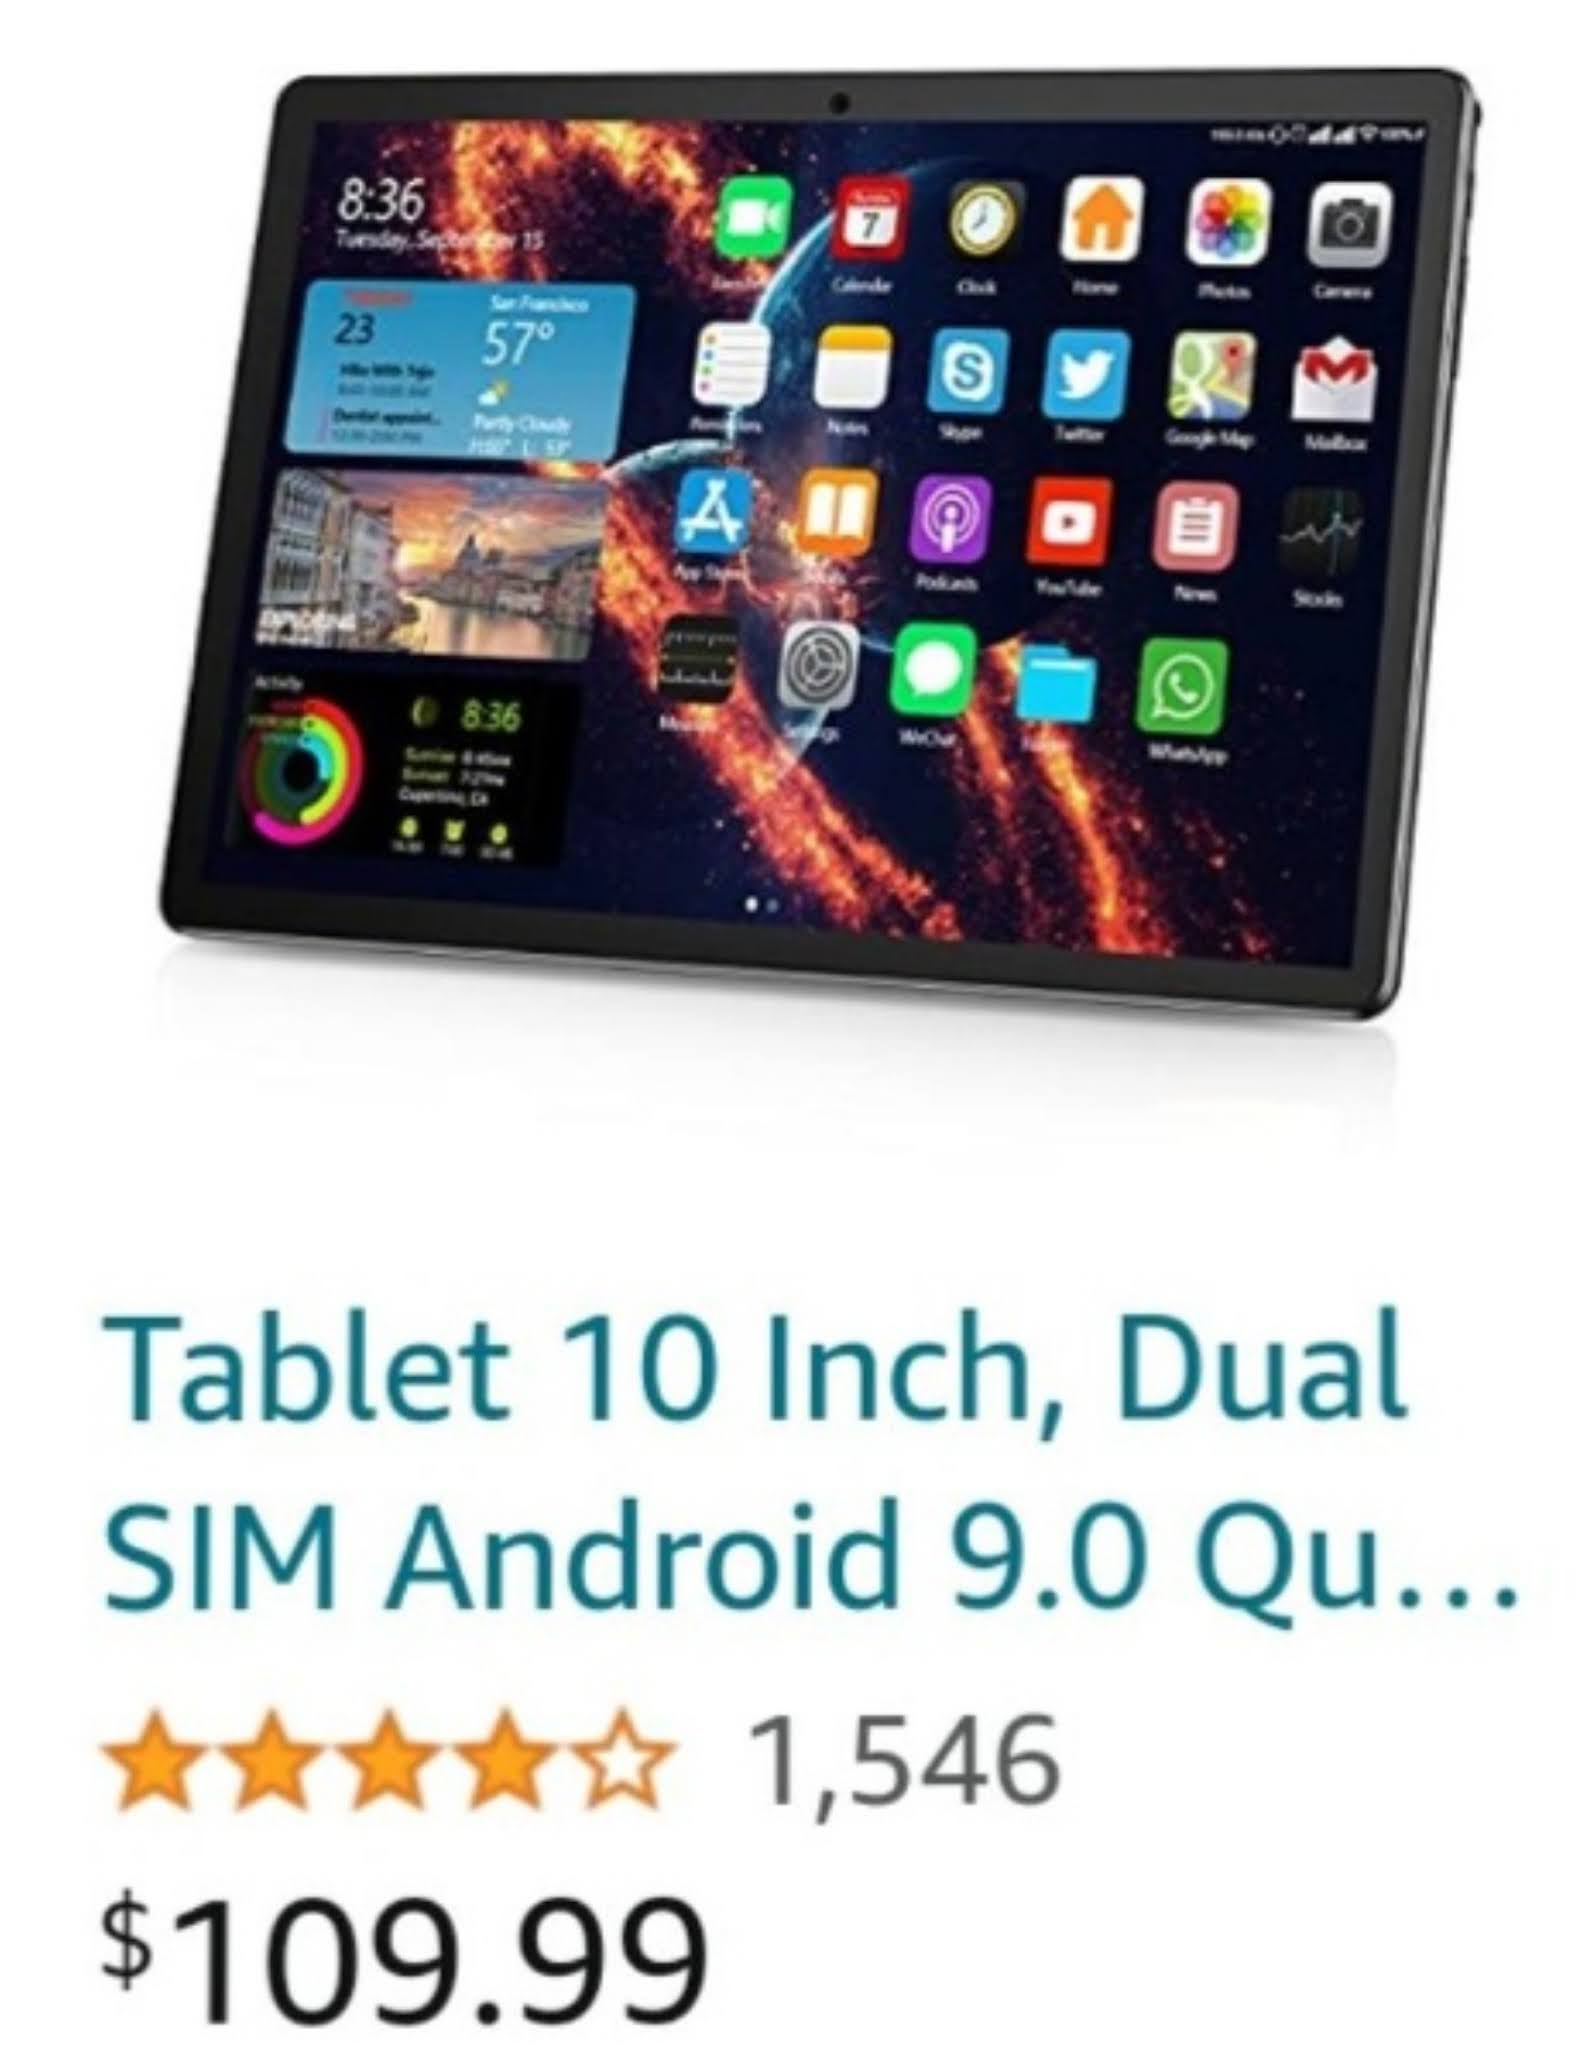 Tablet 10 inch, dual sim android 9.0